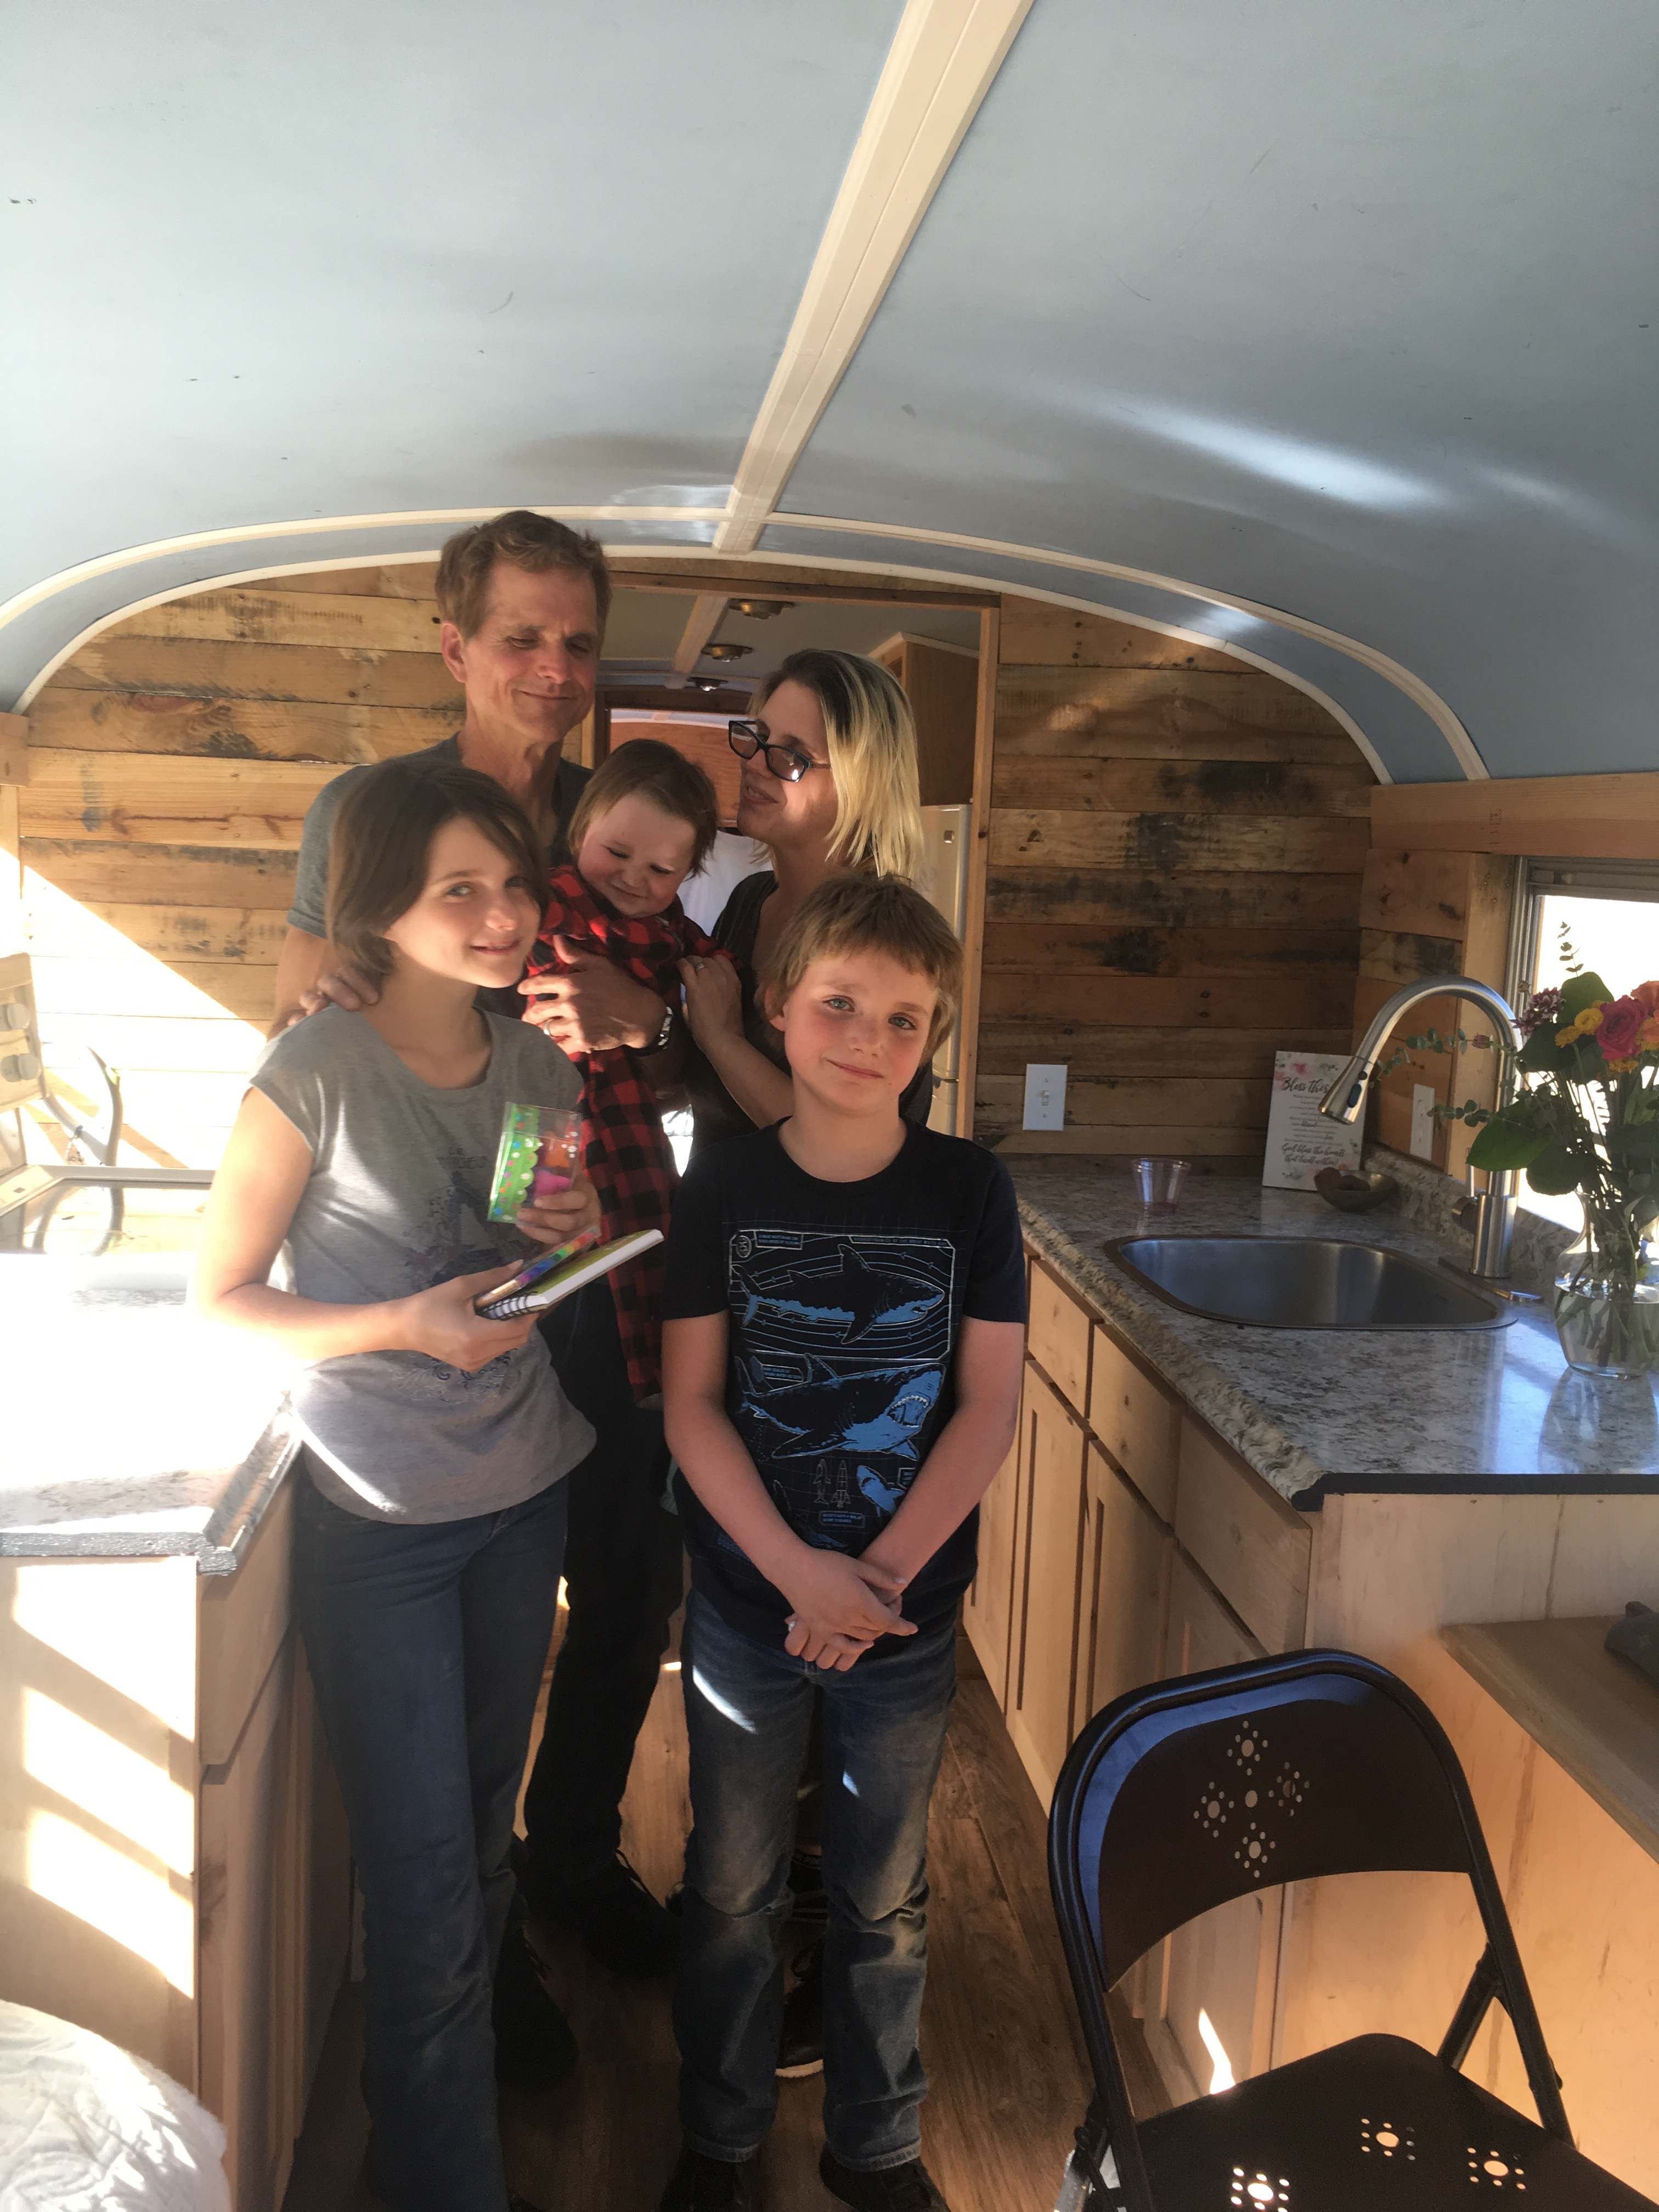 The first family housed, David, Jennifer, Raylee, David jr. and Noah